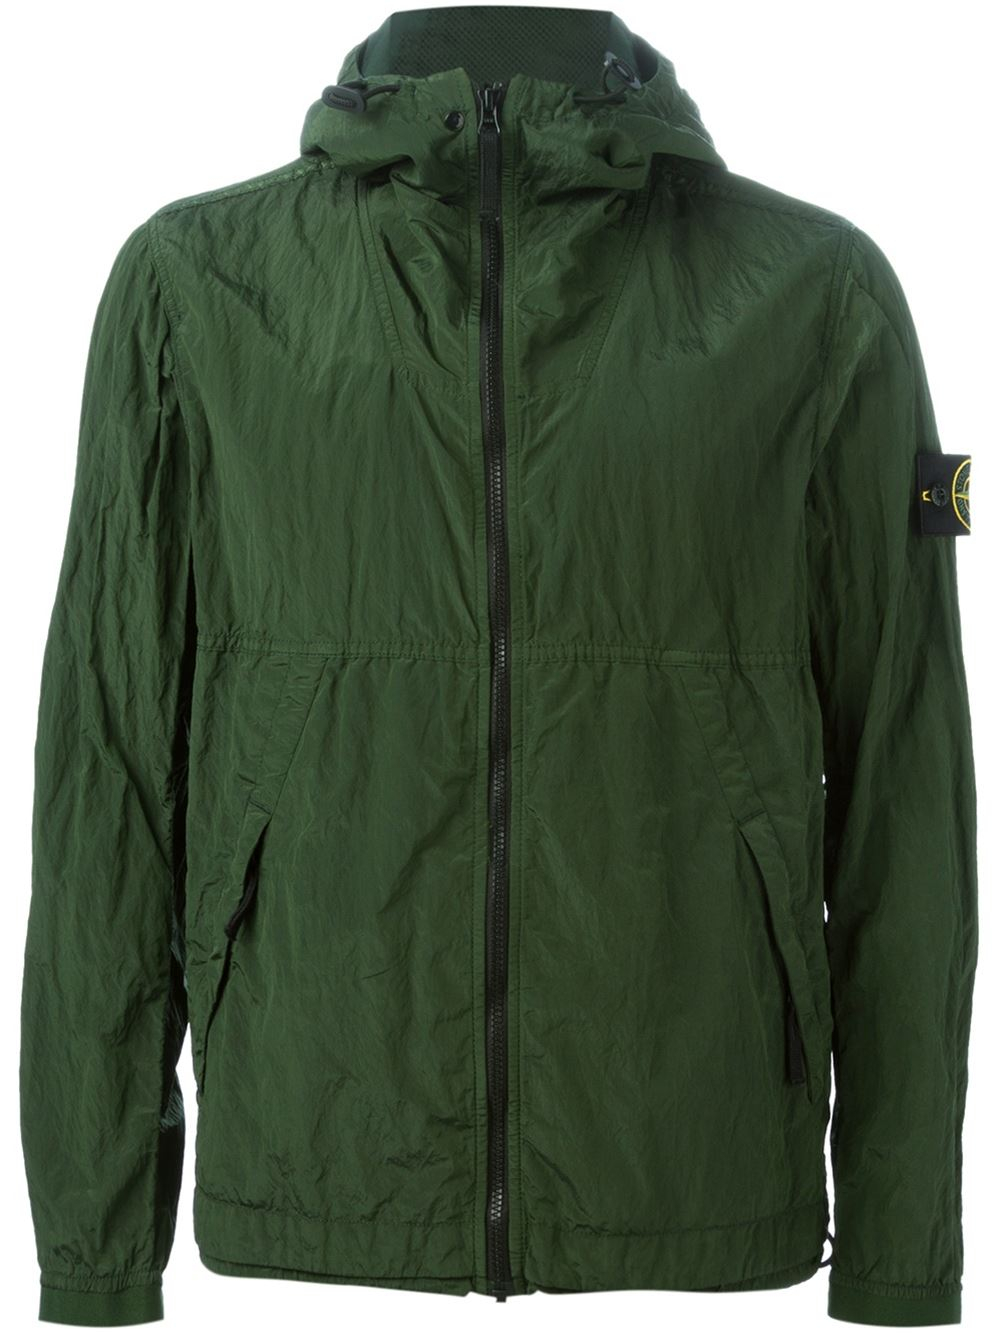 stone island hooded windbreaker jacket in green for men lyst. Black Bedroom Furniture Sets. Home Design Ideas